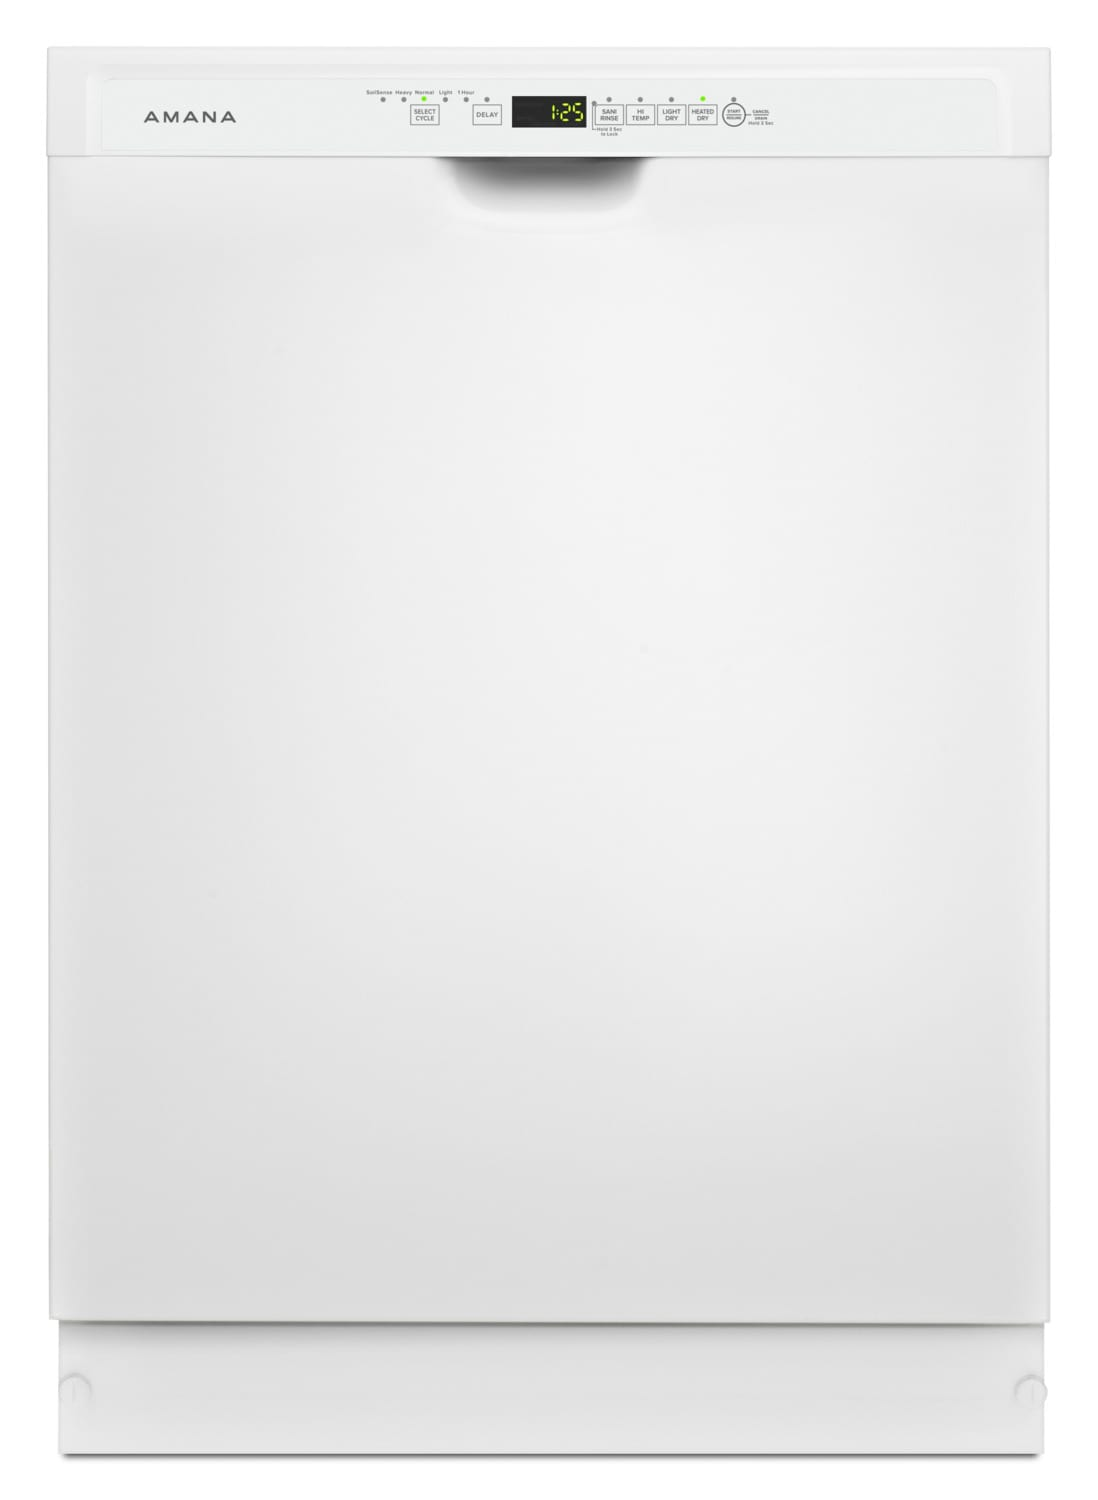 Amana Tall-Tub Built-In Dishwasher with Stainless Steel Interior – ADB1700ADW